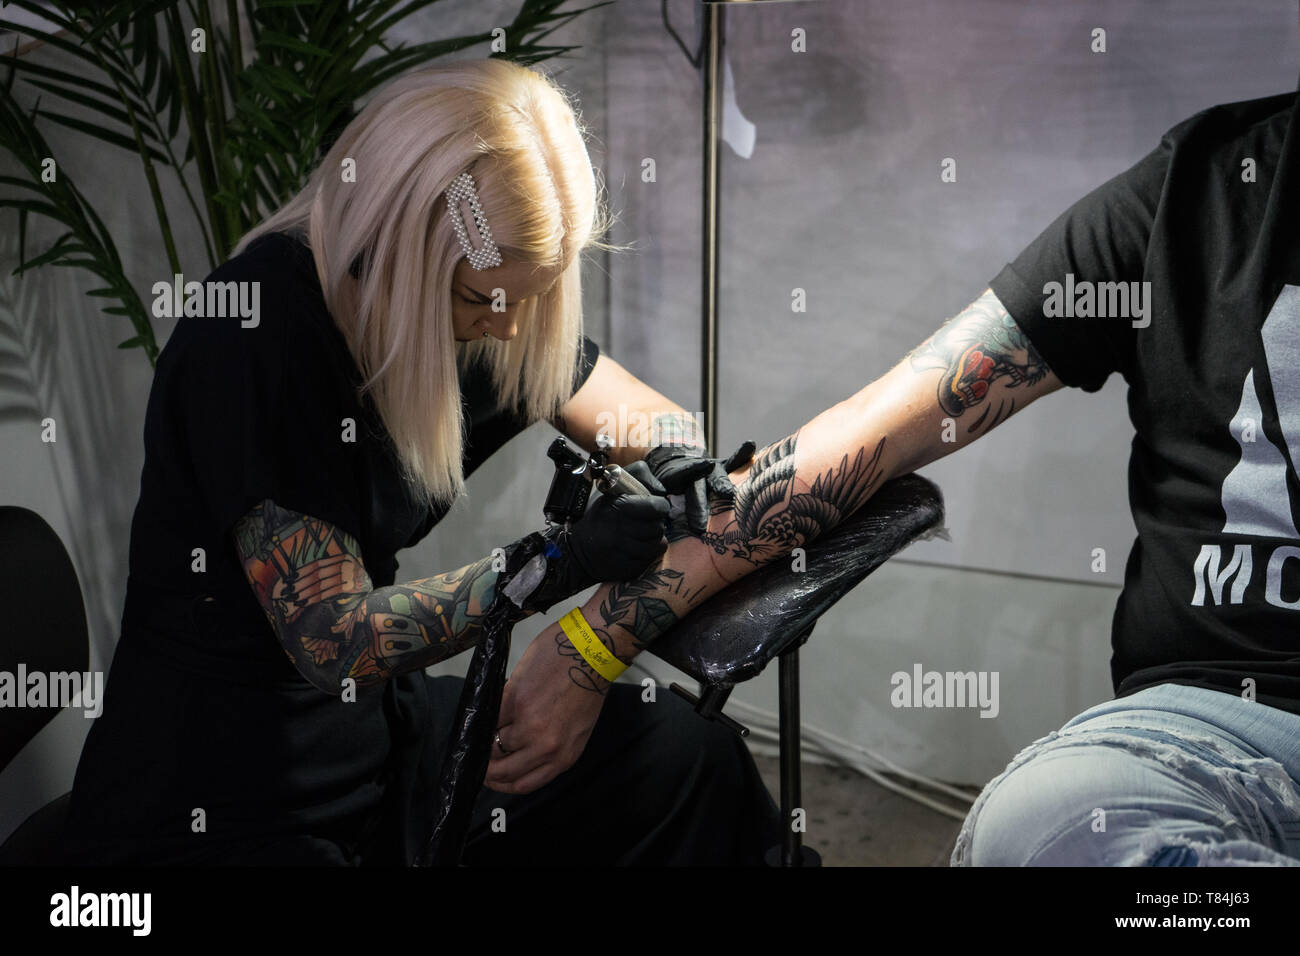 Athens, Attica, Greece. 10th June, 2019. A tattoo artist seen making a tattoo during the event.The Athens Tattoo Convention is a three day annual convention about tattoo and it takes place in Athens, Greece. It has been recognized as one of the best in Europe with visitors from all over the world who come exclusively for the Athens Tattoo Convention experience and also to meet some of the world's most respected tattoo artists. Credit: Nikos Pekiaridis/SOPA Images/ZUMA Wire/Alamy Live News - Stock Image